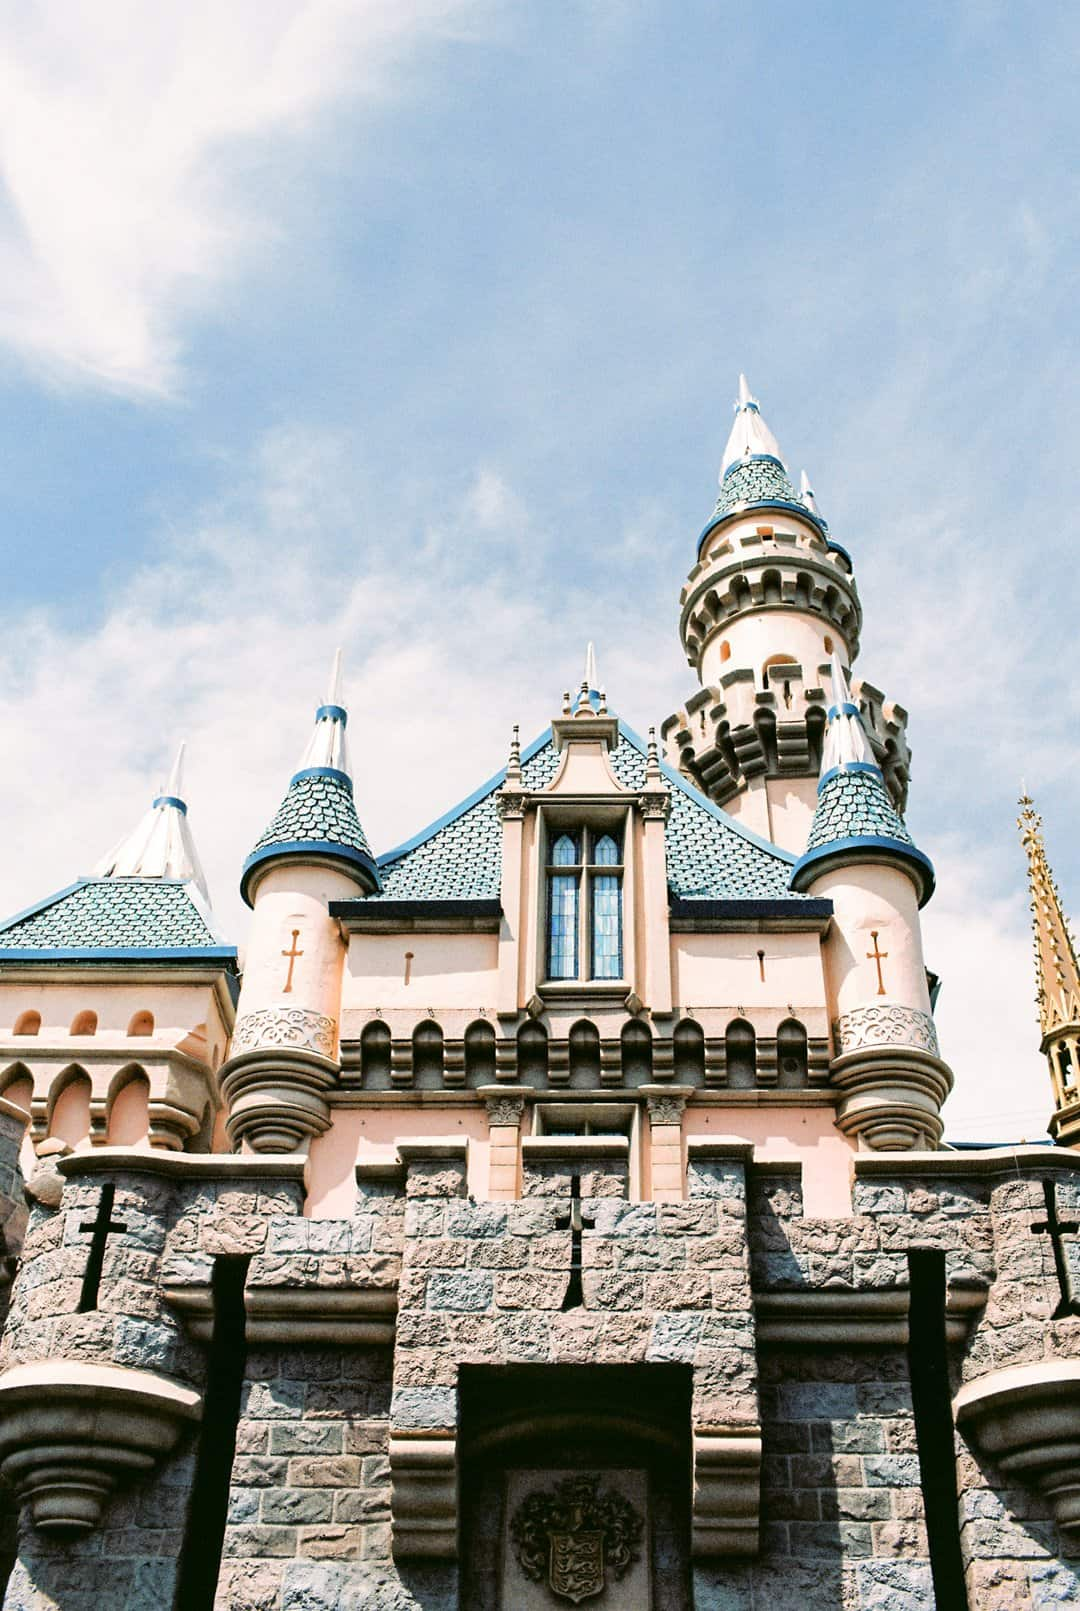 Disneyland on Film by William Trang on Shoot It With Film